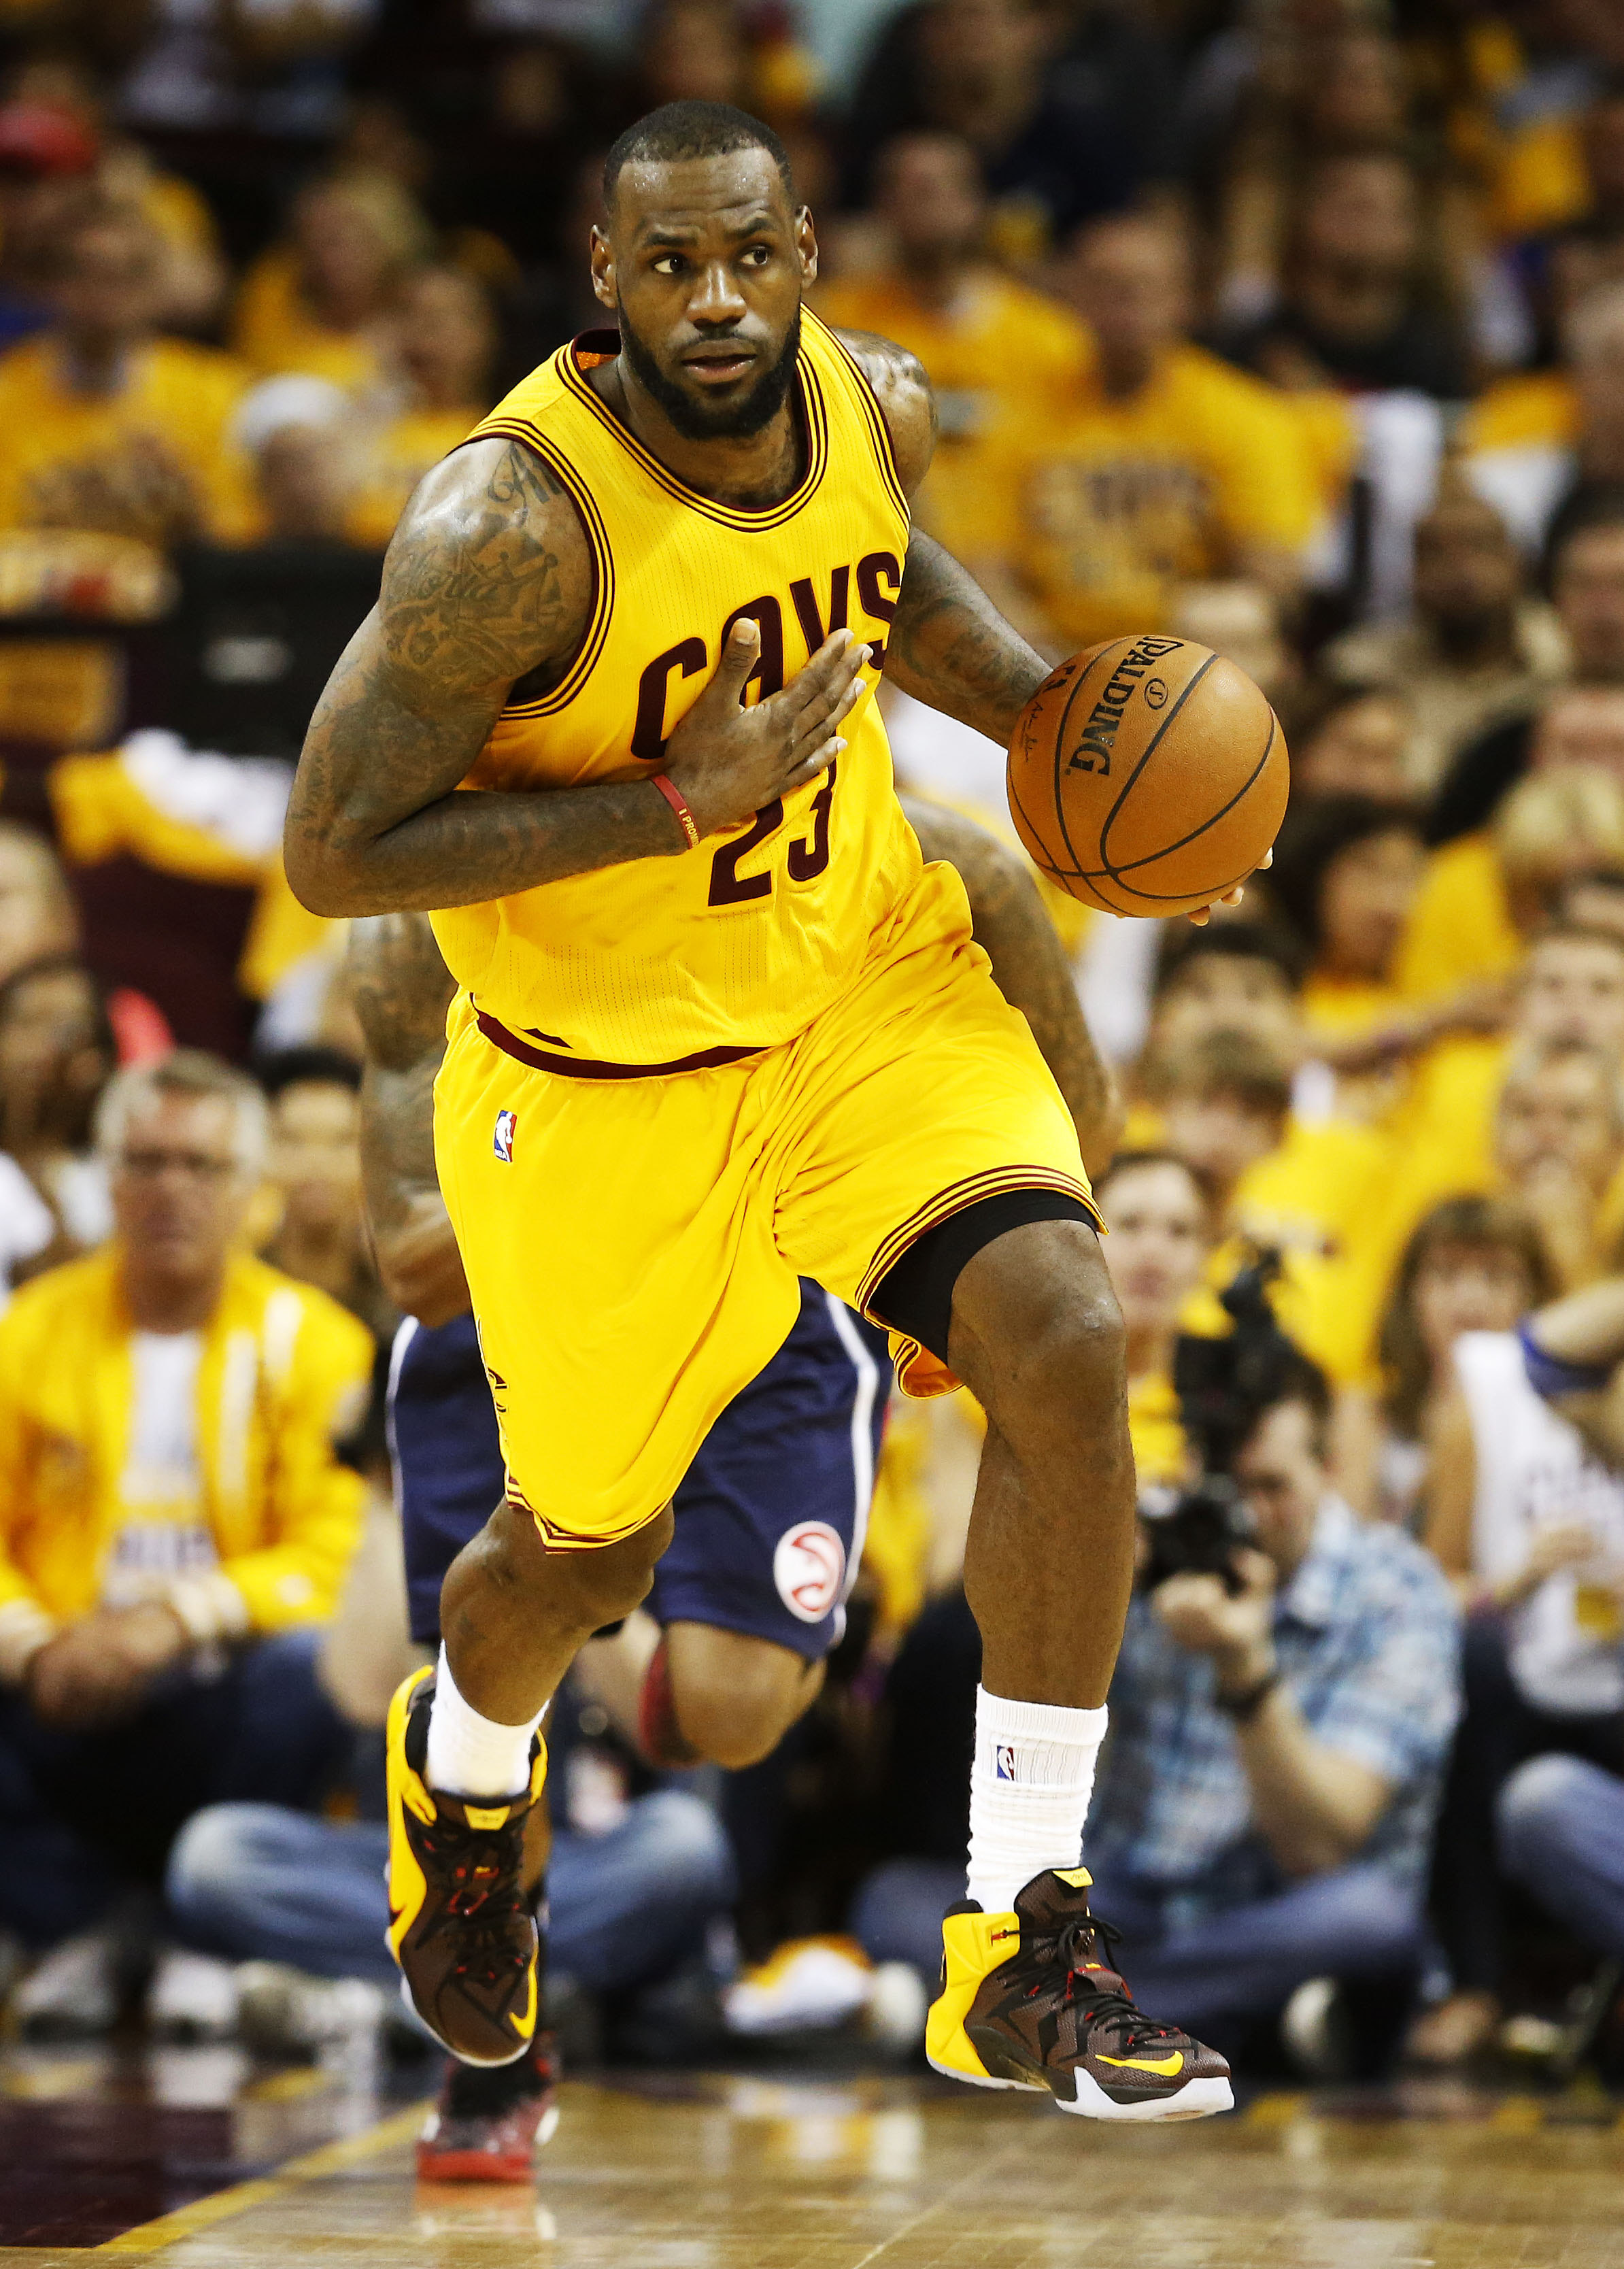 CLEVELAND, OH - MAY 24:  LeBron James #23 of the Cleveland Cavaliers drives against the Atlanta Hawks in the third quarter during Game Three of the Eastern Conference Finals of the 2015 NBA Playoffs at Quicken Loans Arena on May 24, 2015 in Cleveland, Ohio. NOTE TO USER: User expressly acknowledges and agrees that, by downloading and or using this Photograph, user is consenting to the terms and conditions of the Getty Images License Agreement.  (Photo by Gregory Shamus/Getty Images)